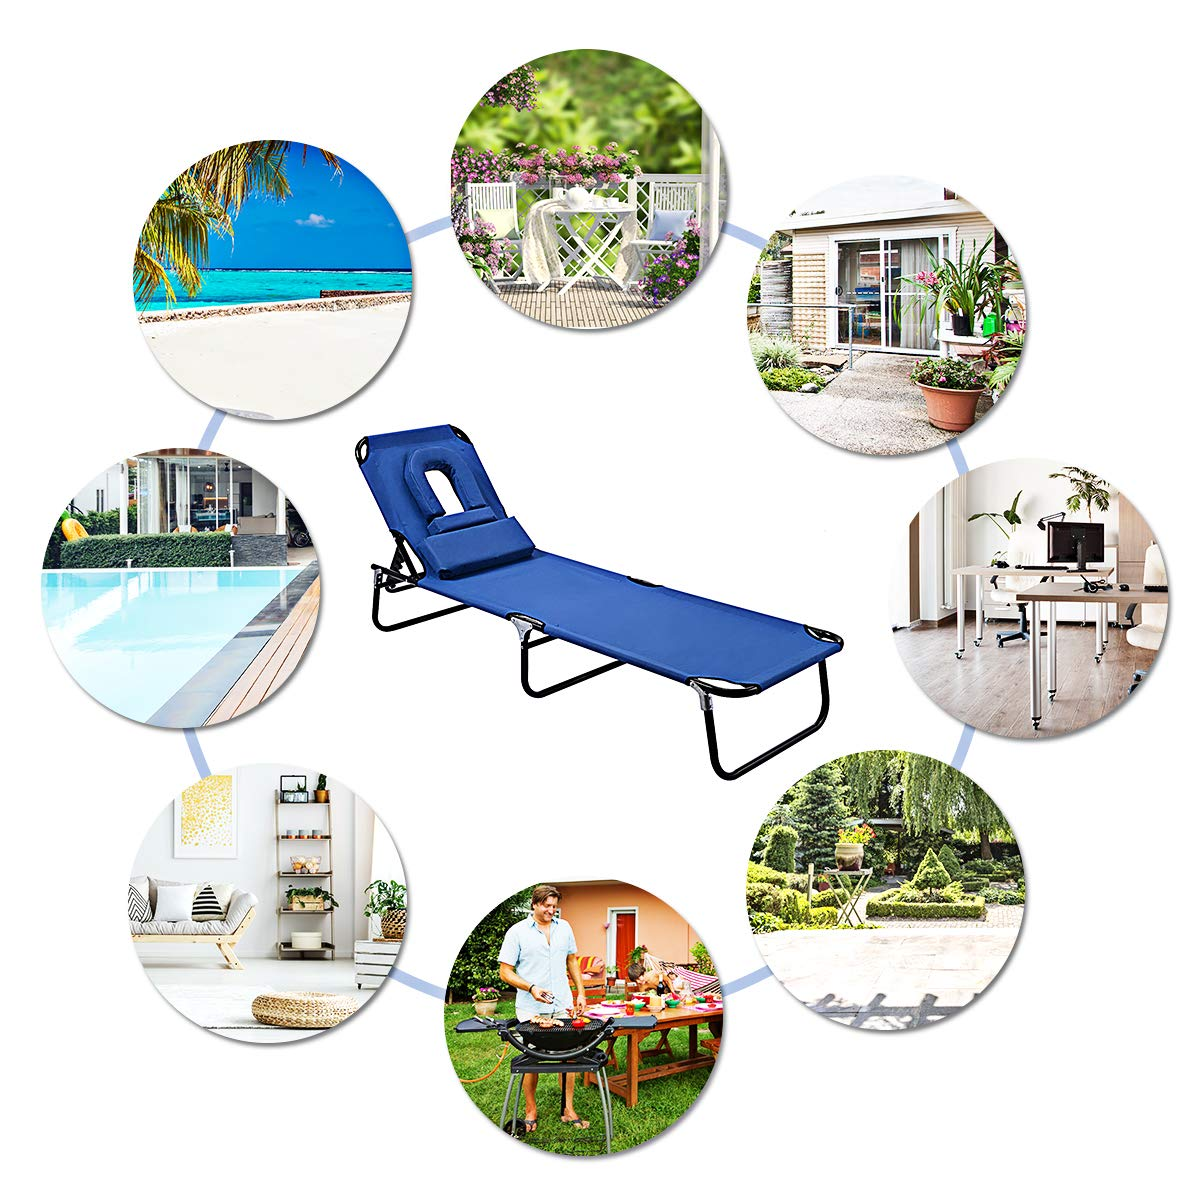 Adjustable Back Outdoor Beach Pool w//Tanning Face Sown Hole Blue 1 Piece Goplus Folding Chaise Lounge Chair